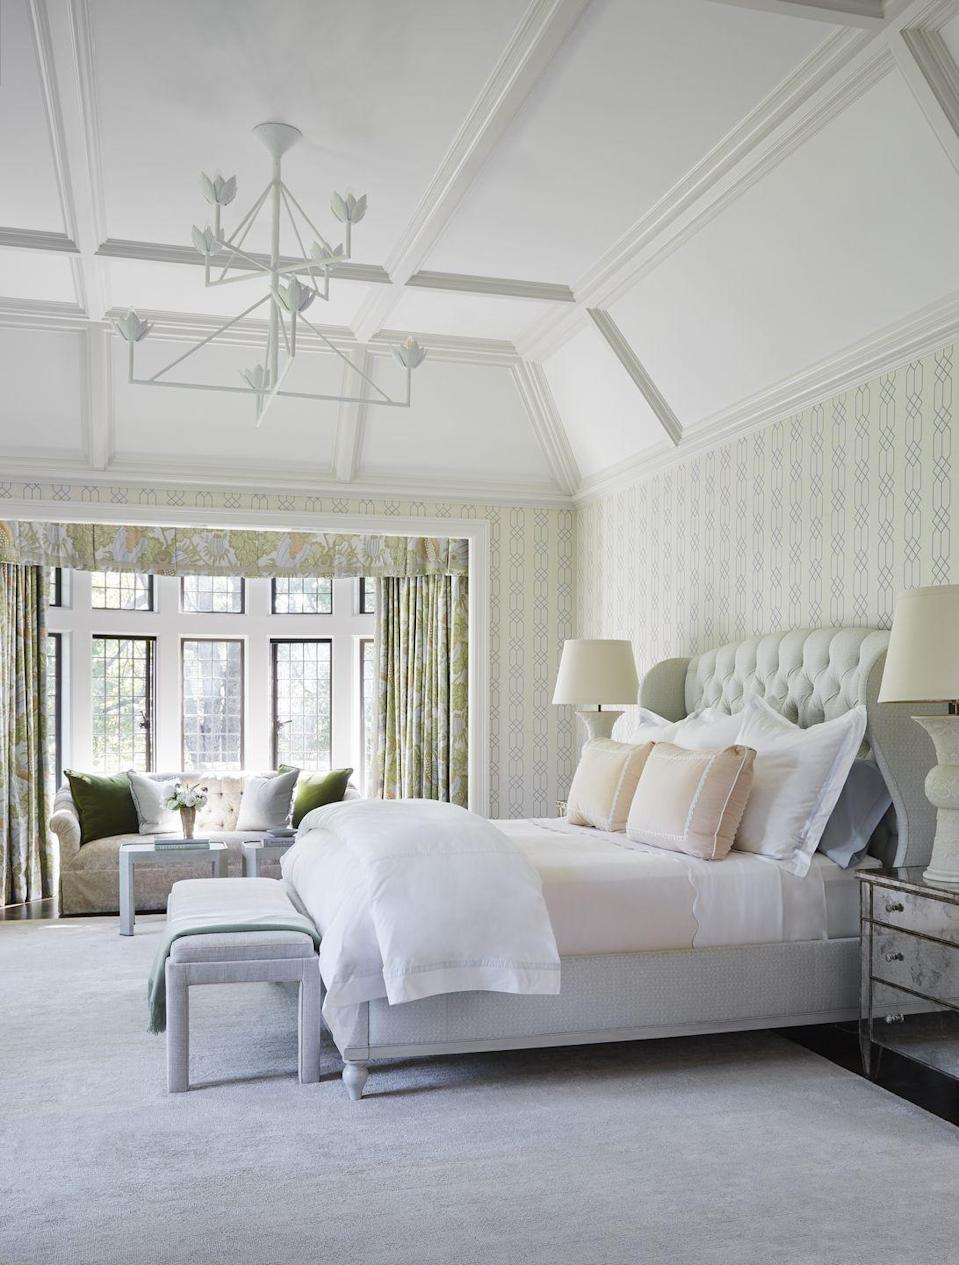 "<p>This inviting bedroom suite in a <a href=""https://www.veranda.com/decorating-ideas/a35369881/carrier-and-company-bronxville-house-tour/"" rel=""nofollow noopener"" target=""_blank"" data-ylk=""slk:Bronxville, New York home"" class=""link rapid-noclick-resp"">Bronxville, New York home</a> designed by <a href=""https://www.veranda.com/decorating-ideas/a35369881/carrier-and-company-bronxville-house-tour/"" rel=""nofollow noopener"" target=""_blank"" data-ylk=""slk:Carrier & Company"" class=""link rapid-noclick-resp"">Carrier & Company</a> is a perfect example of the house's balance of Old-World sophistication and a youthful spirit. A white, sculptural chandelier and two overside lamps residing on metallic bedside tables creates a variety of lighting options at night while Tudor-style iron windows let in just the right amount of light to keep this room feeling vibrant and welcoming. </p>"